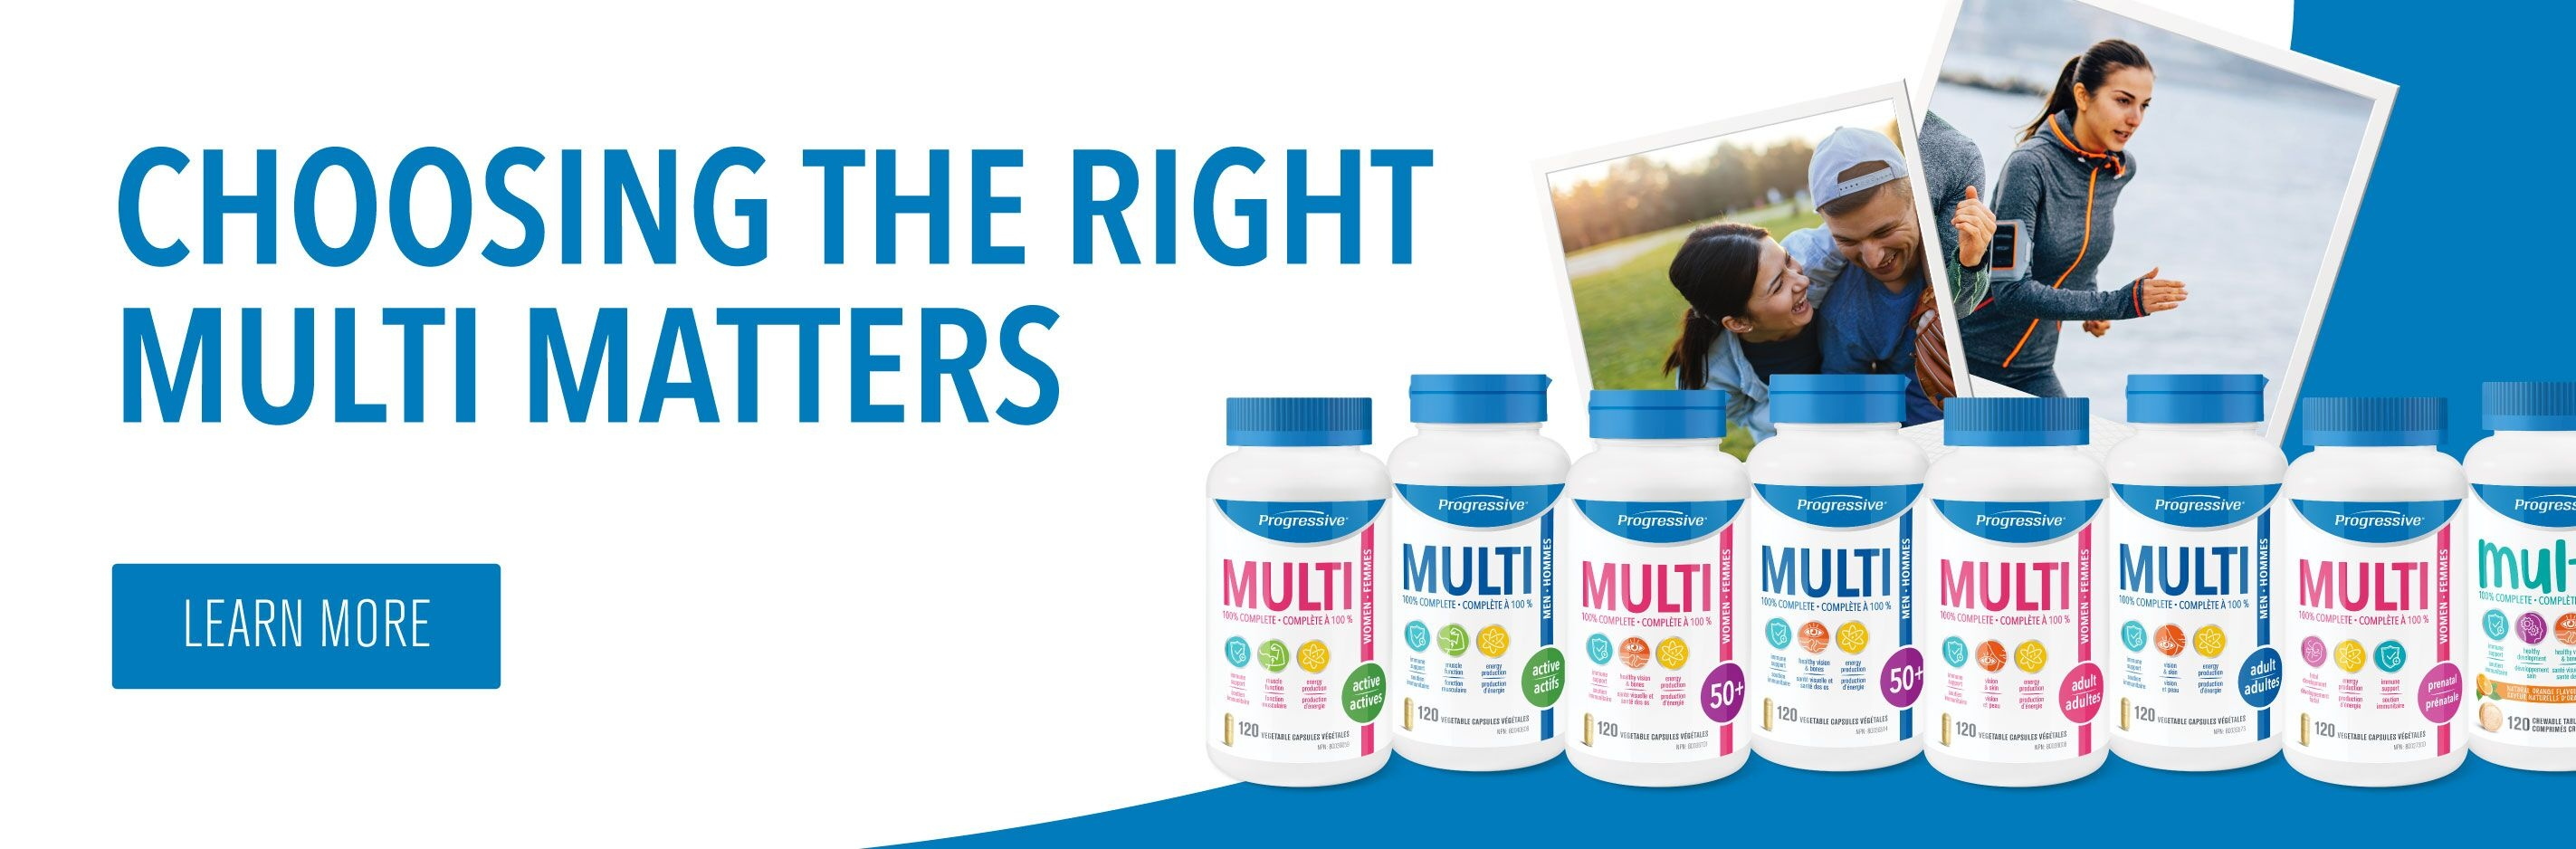 Choosing the Right Multi Matters